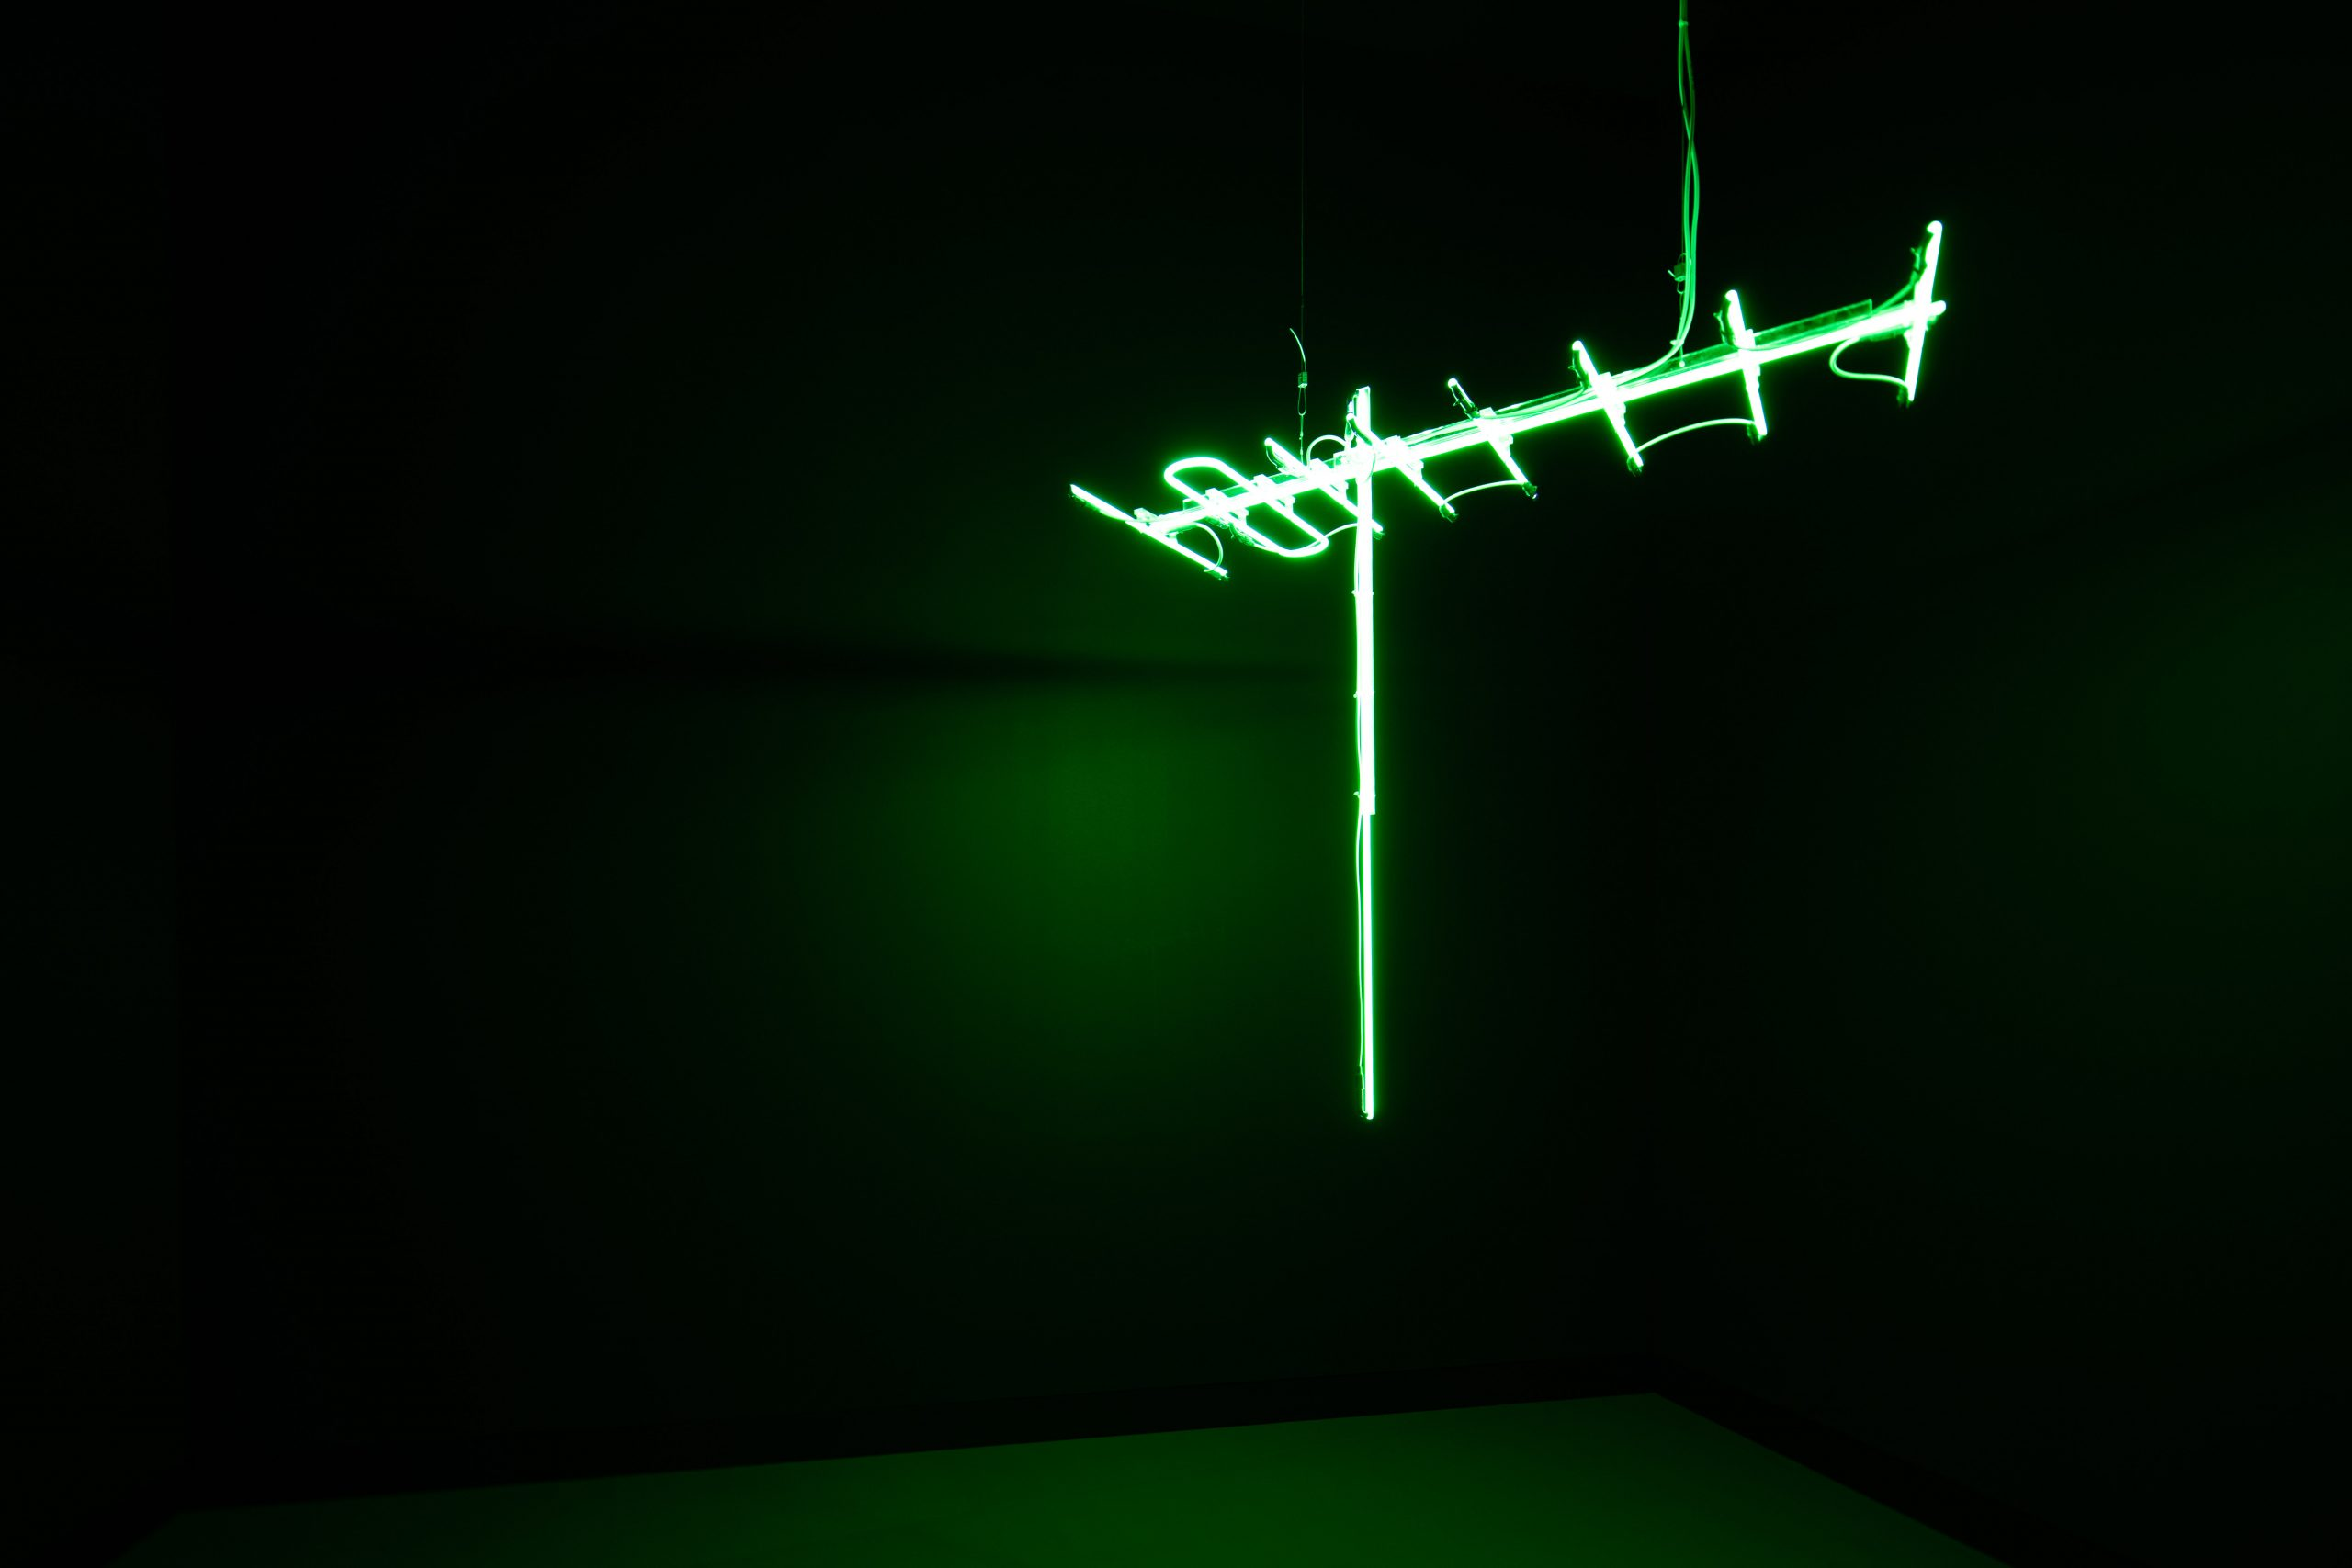 Ahmed Mater, Antenna (Green), 2010. From the series Antenna. 150 x 150 x 50 cm.